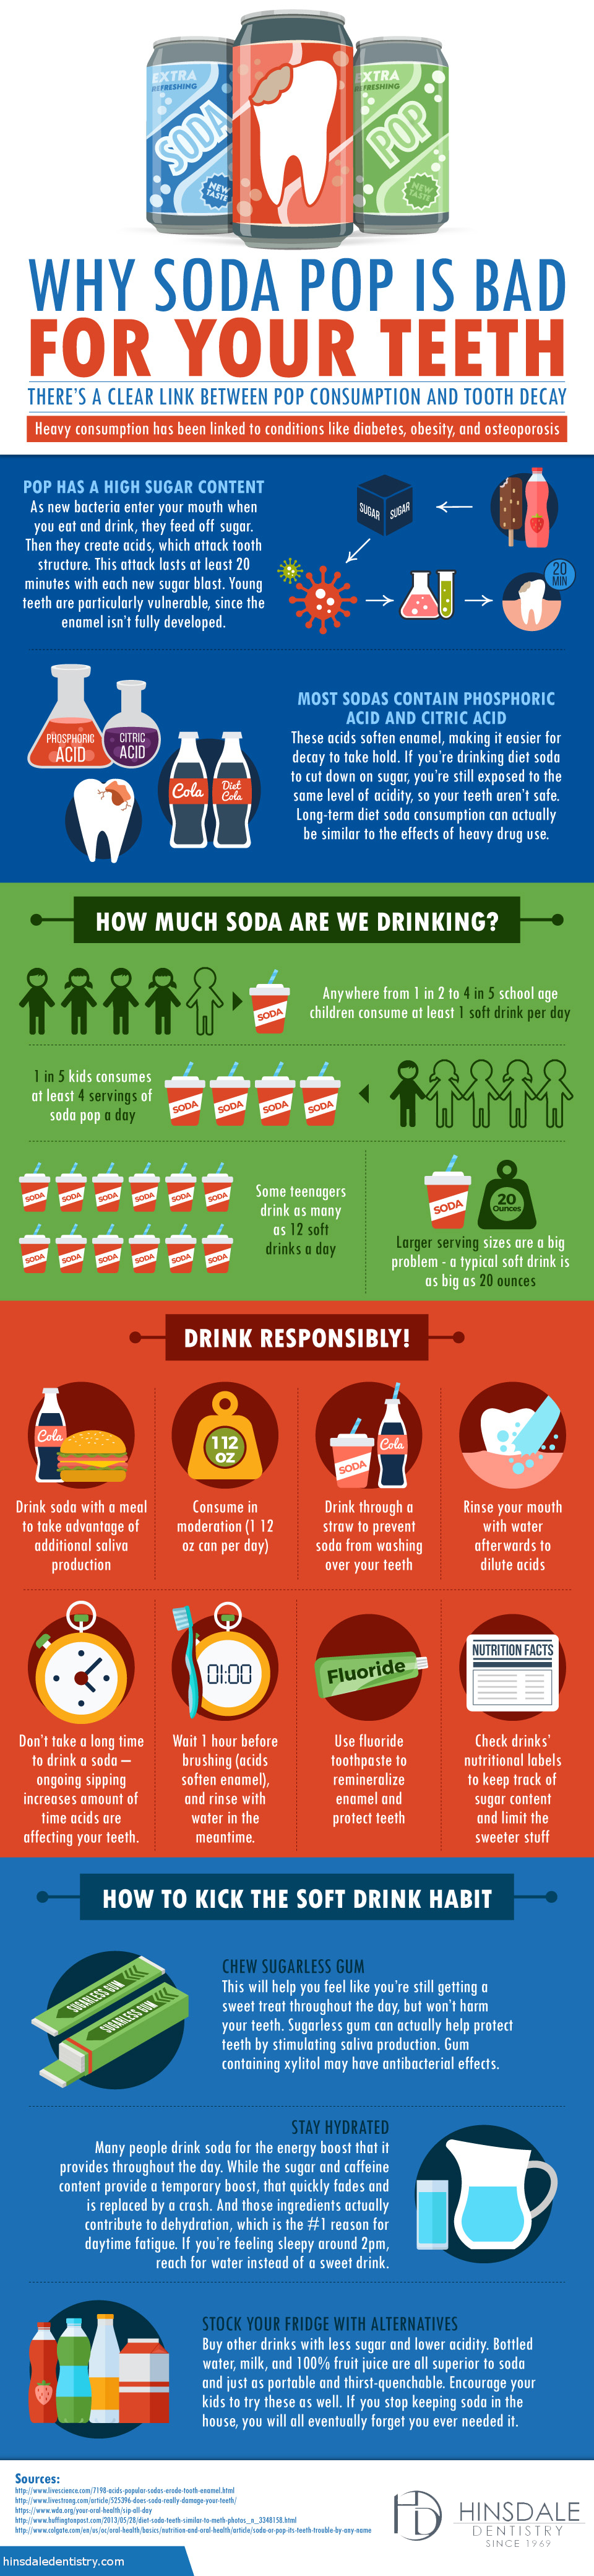 Hinsdale Pop and Teeth infographic